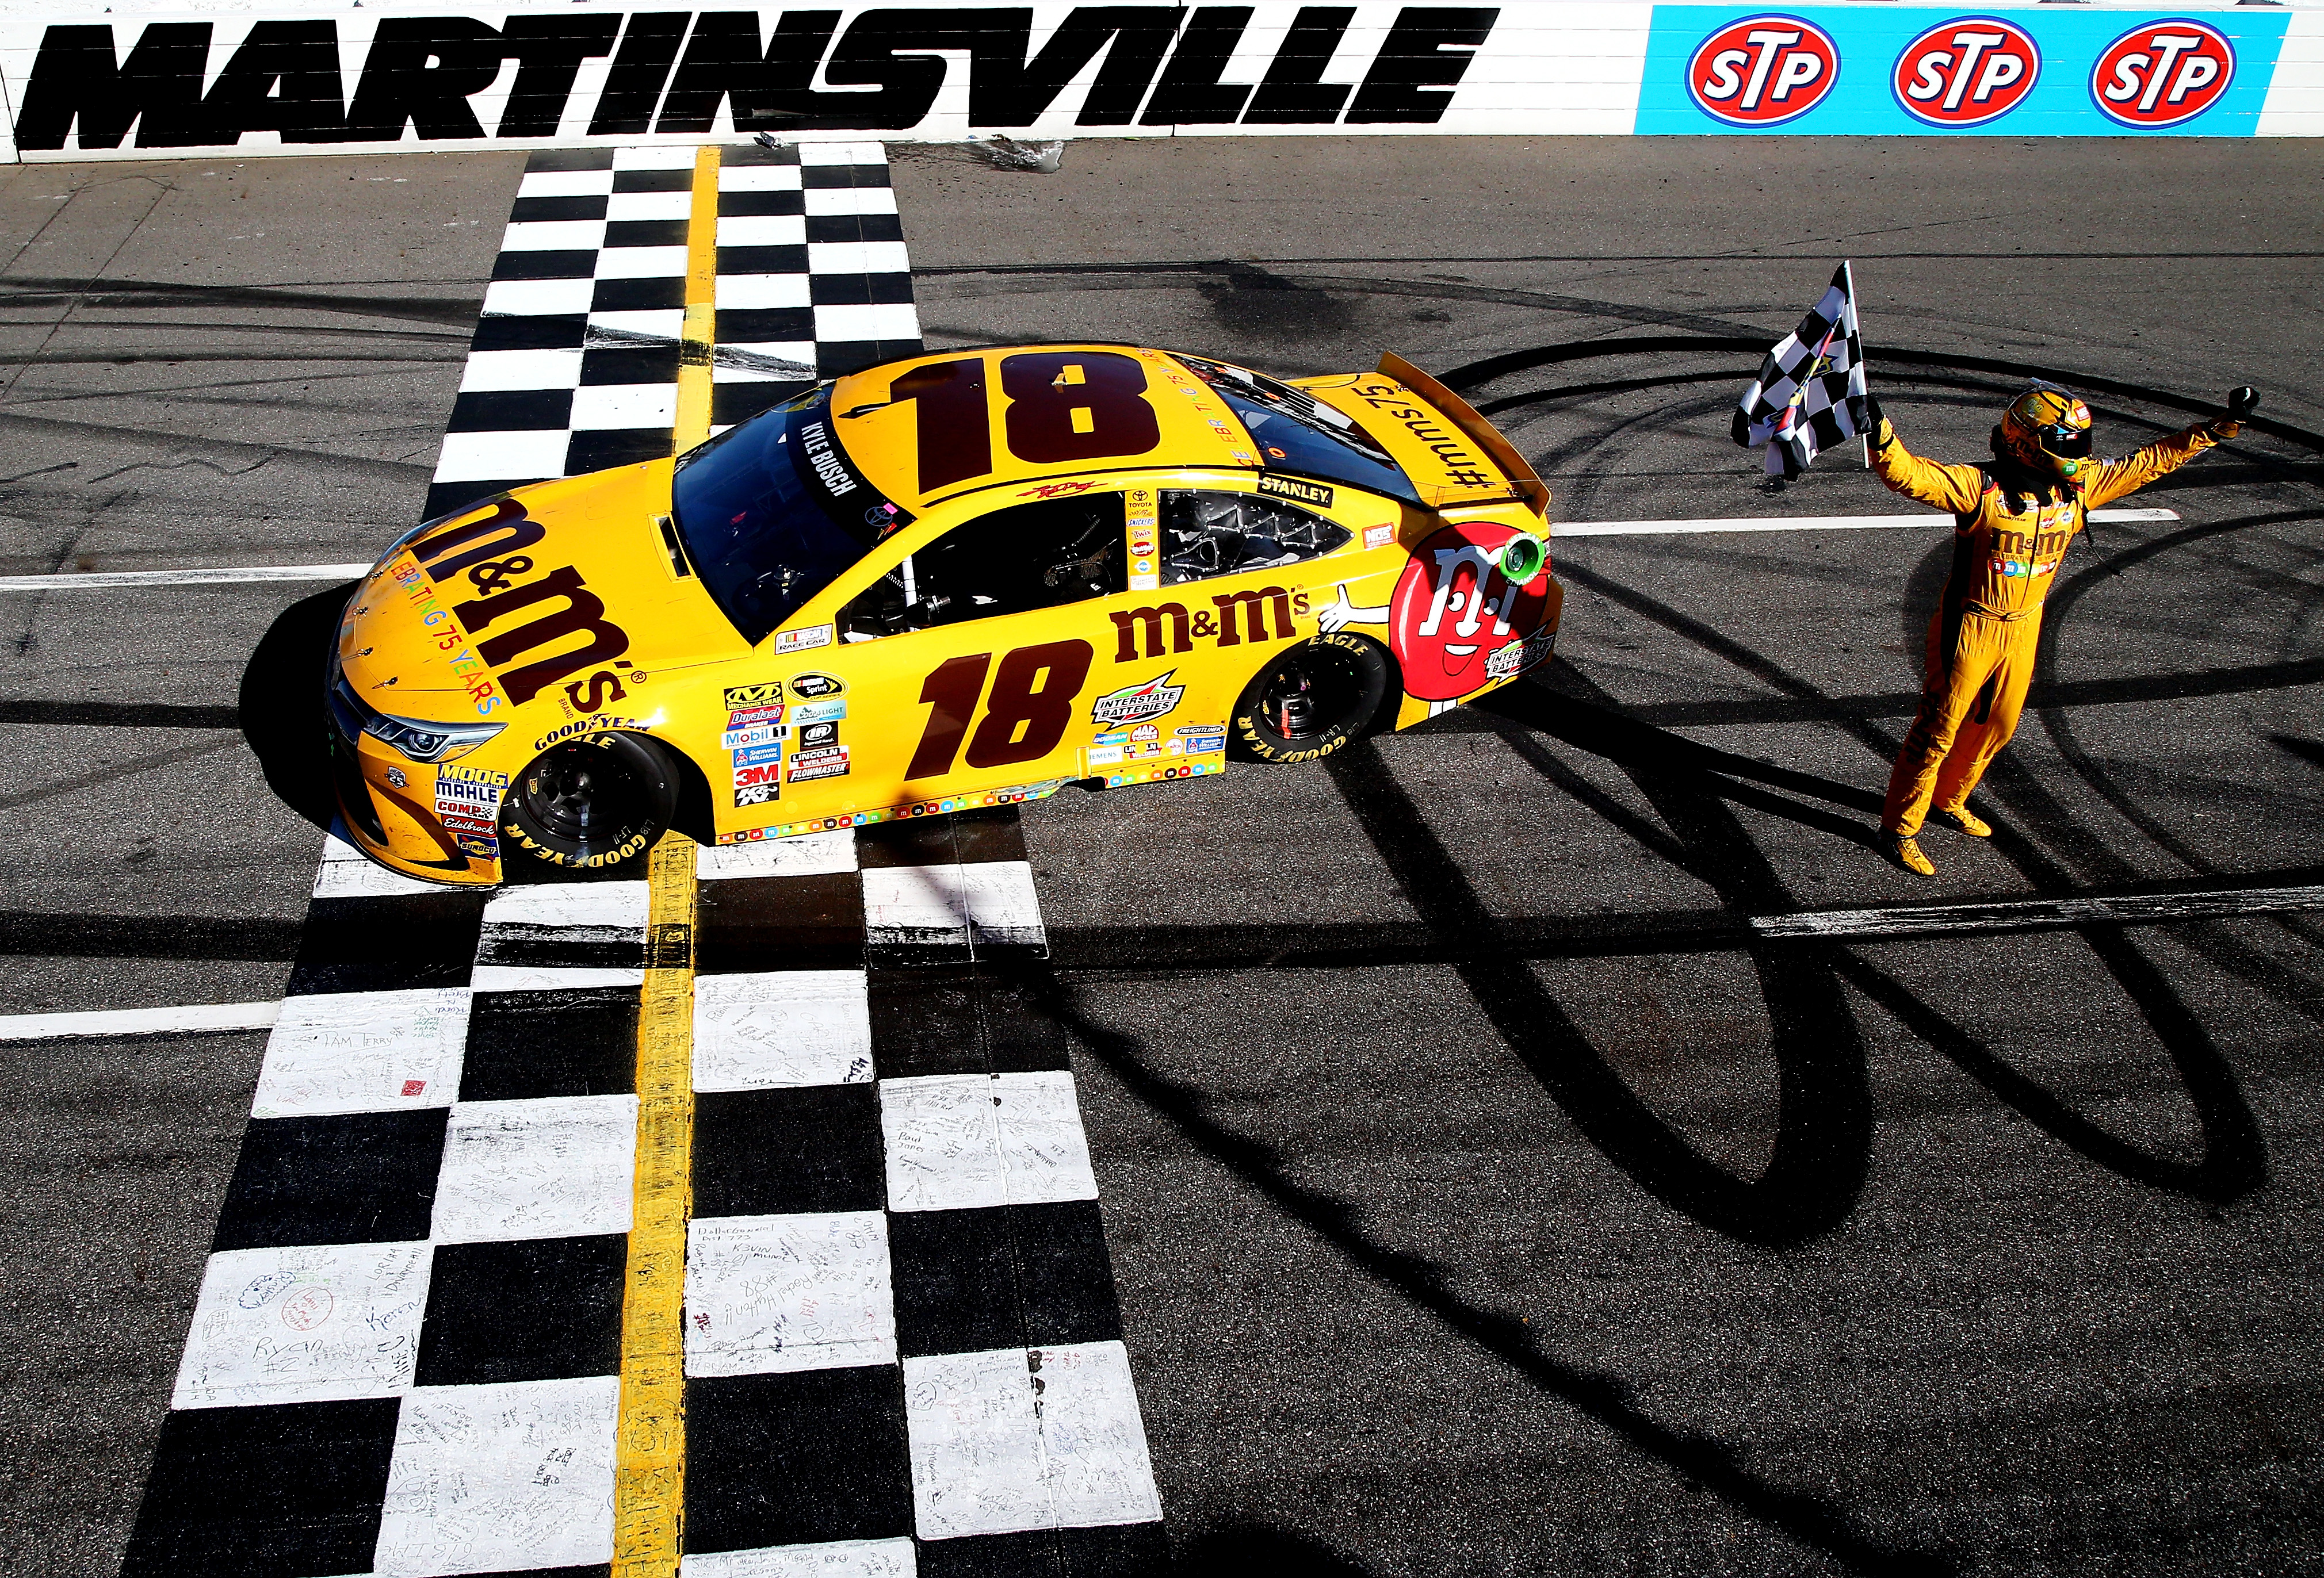 MARTINSVILLE, VA - APRIL 03:  Kyle Busch, driver of the #18 M&M's 75th Anniversary Toyota, celebrates with the checkered flag after winning the NASCAR Sprint Cup Series STP 500 at Martinsville Speedway on April 3, 2016 in Martinsville, Virginia.  (Photo by Sean Gardner/NASCAR via Getty Images)